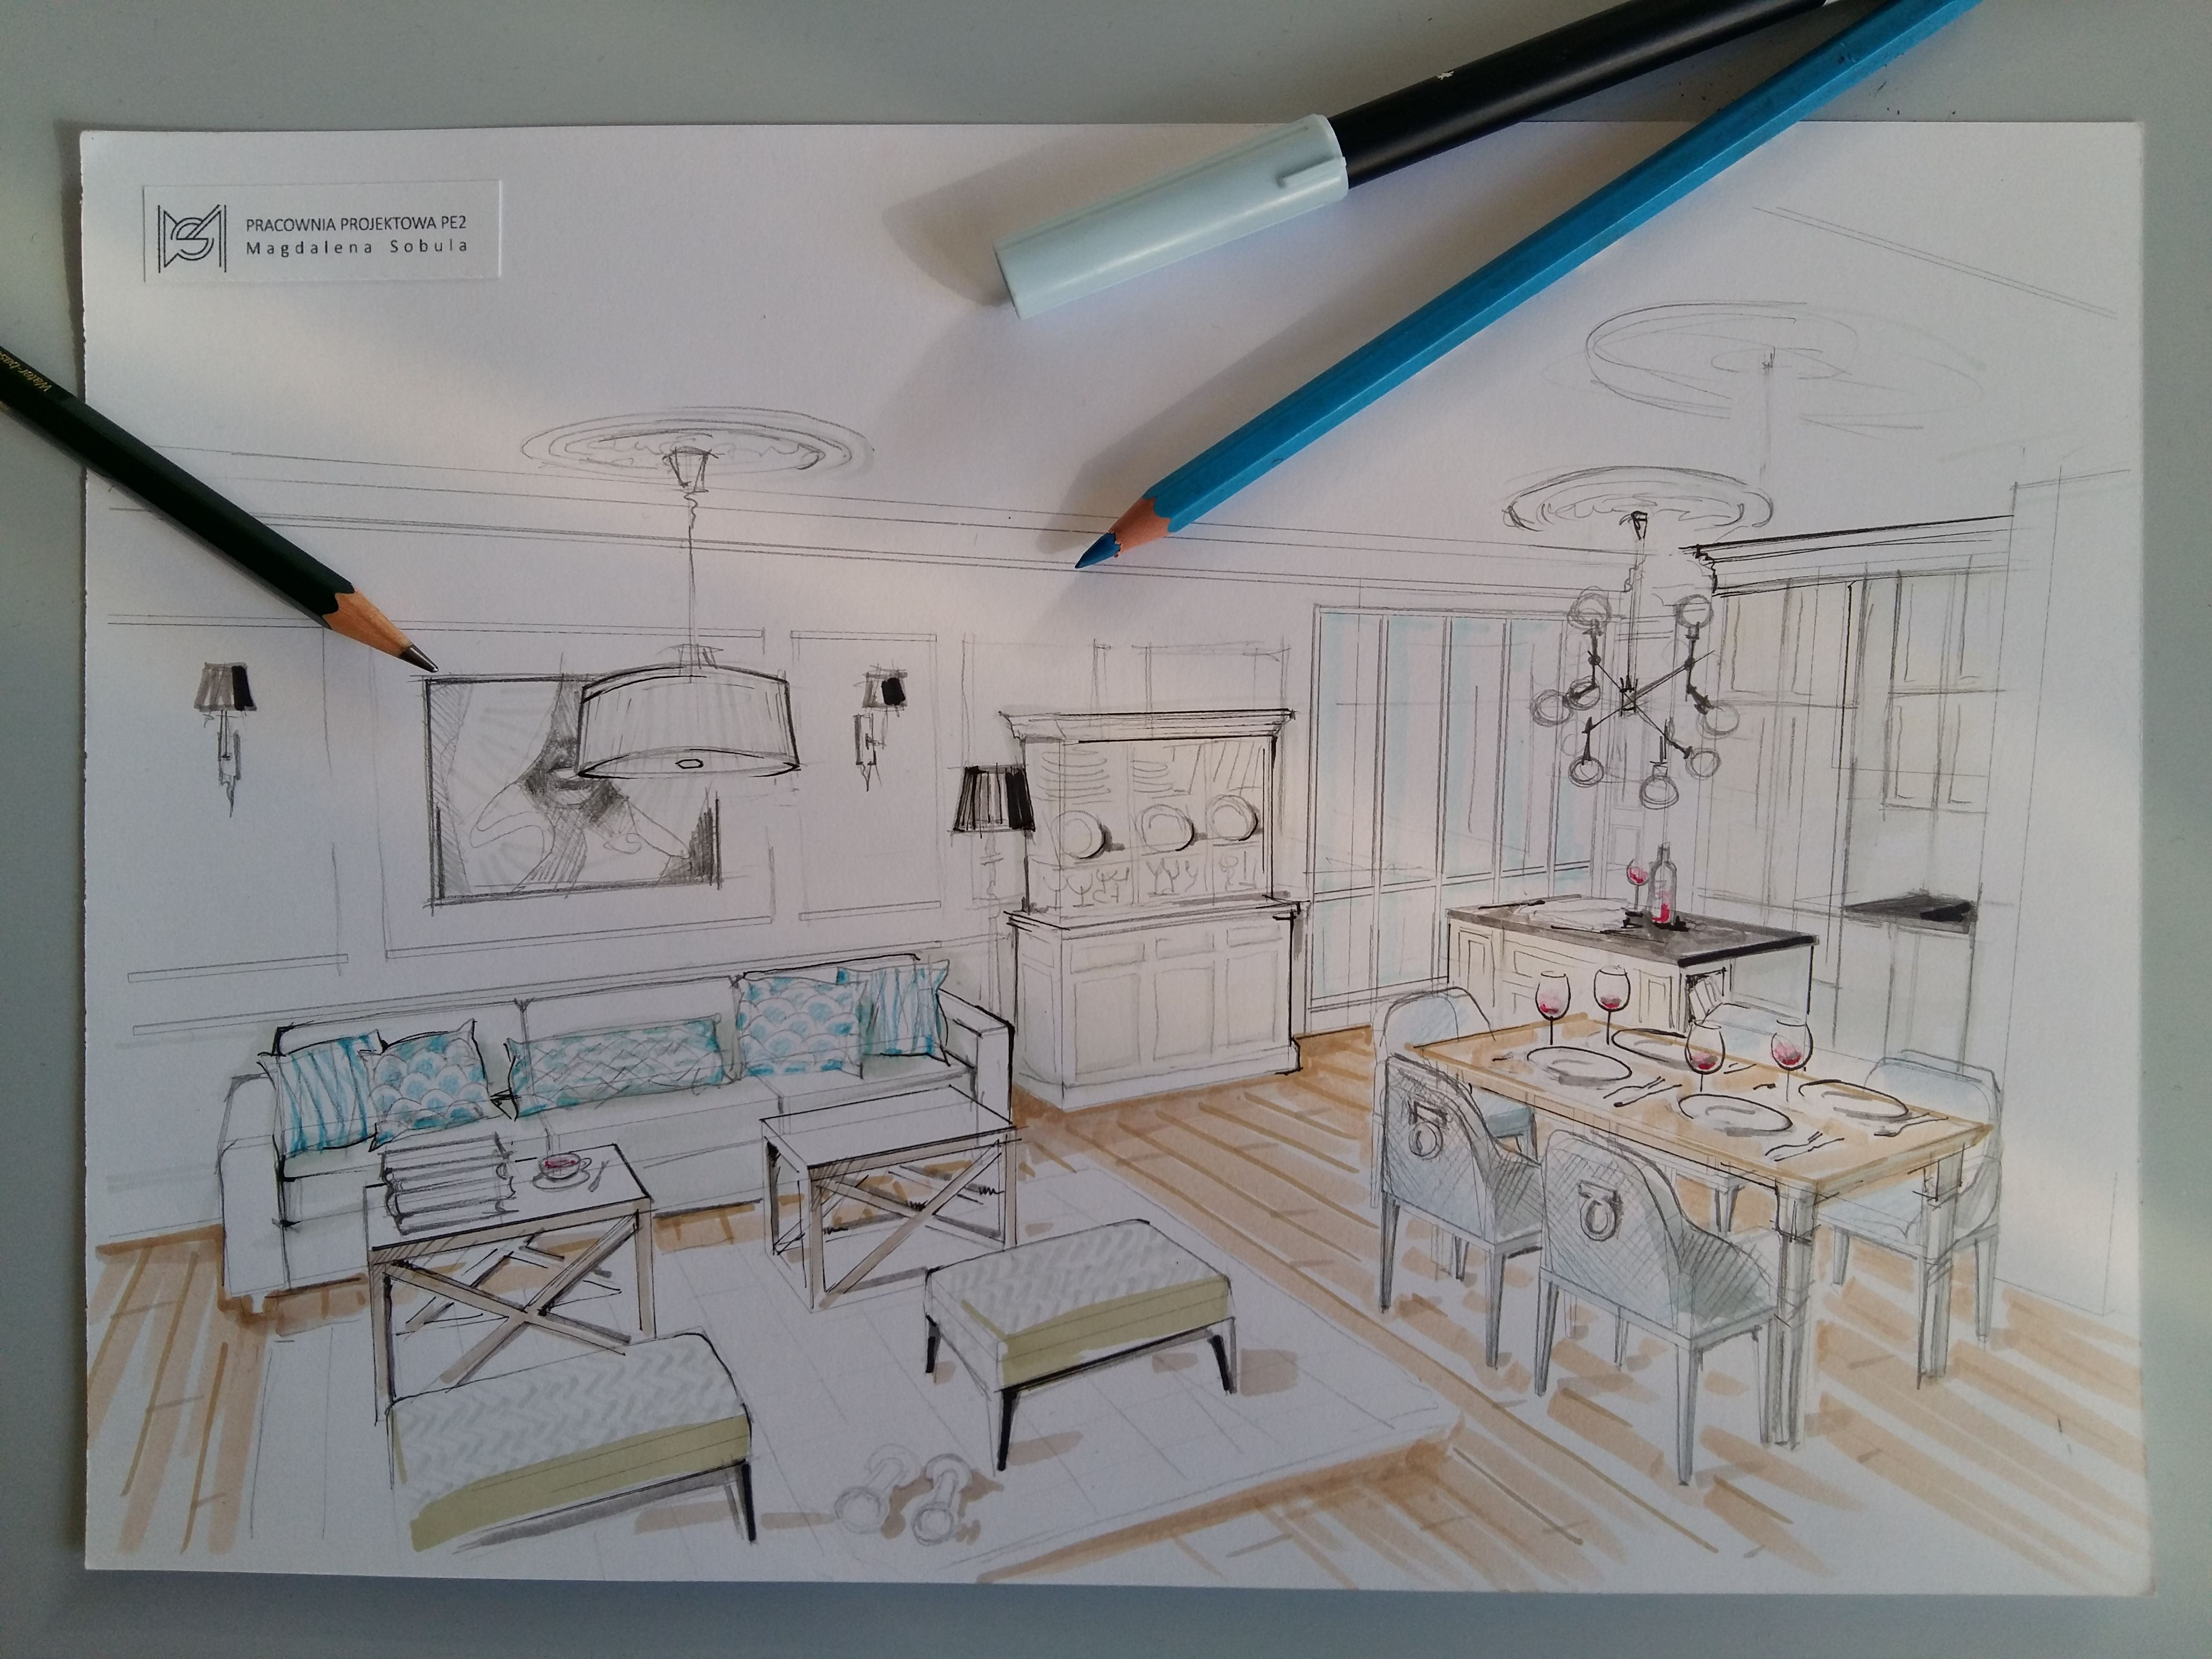 Dessin Decoration Interieur Living Room Designed By Magdalena Sobula Pracownia